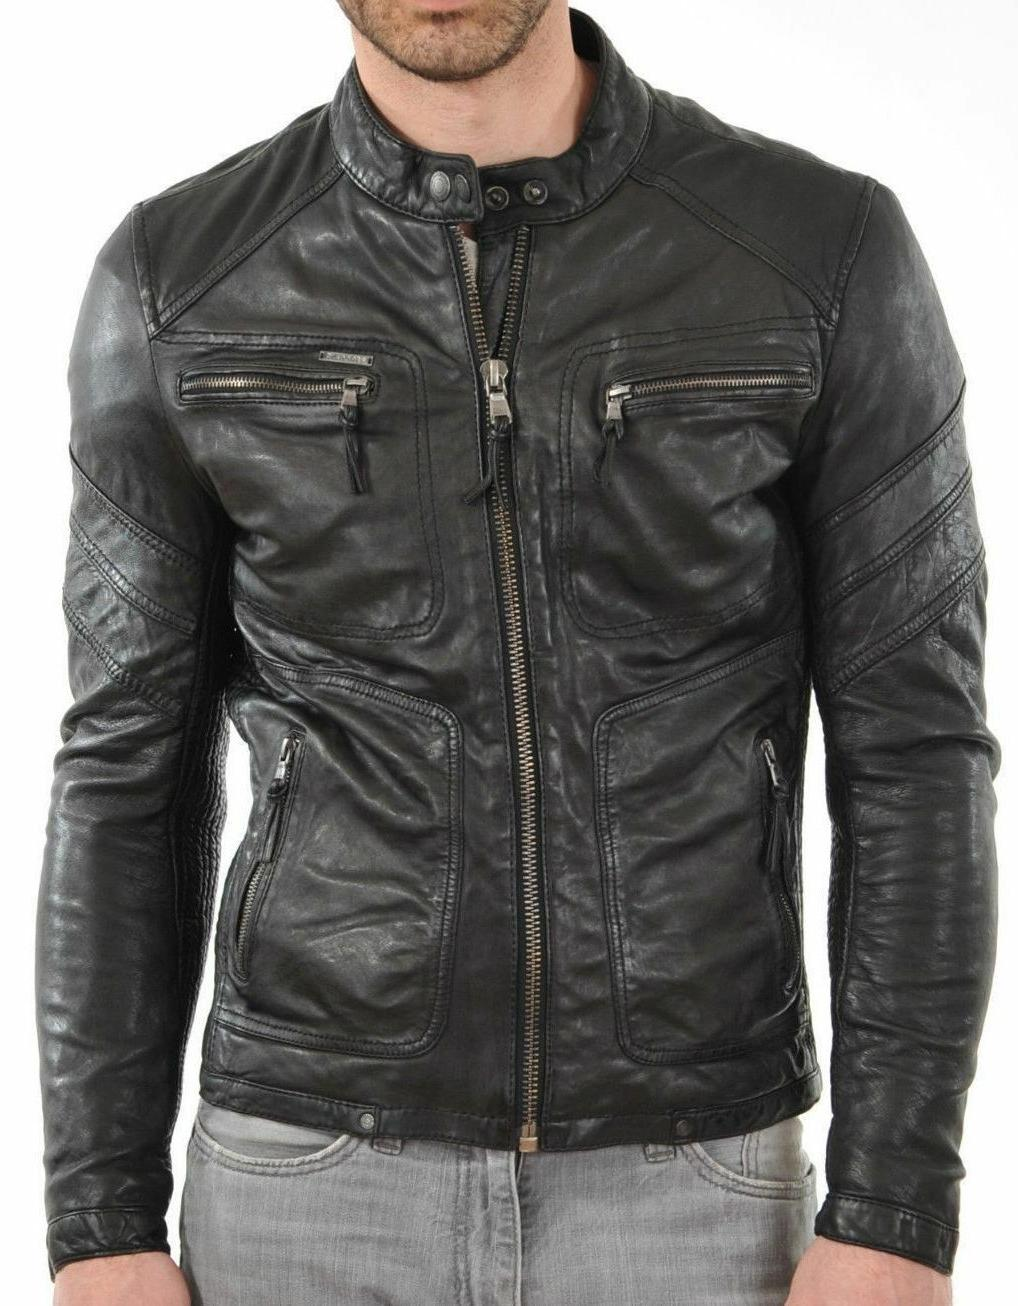 New Leather Outwear Jacket